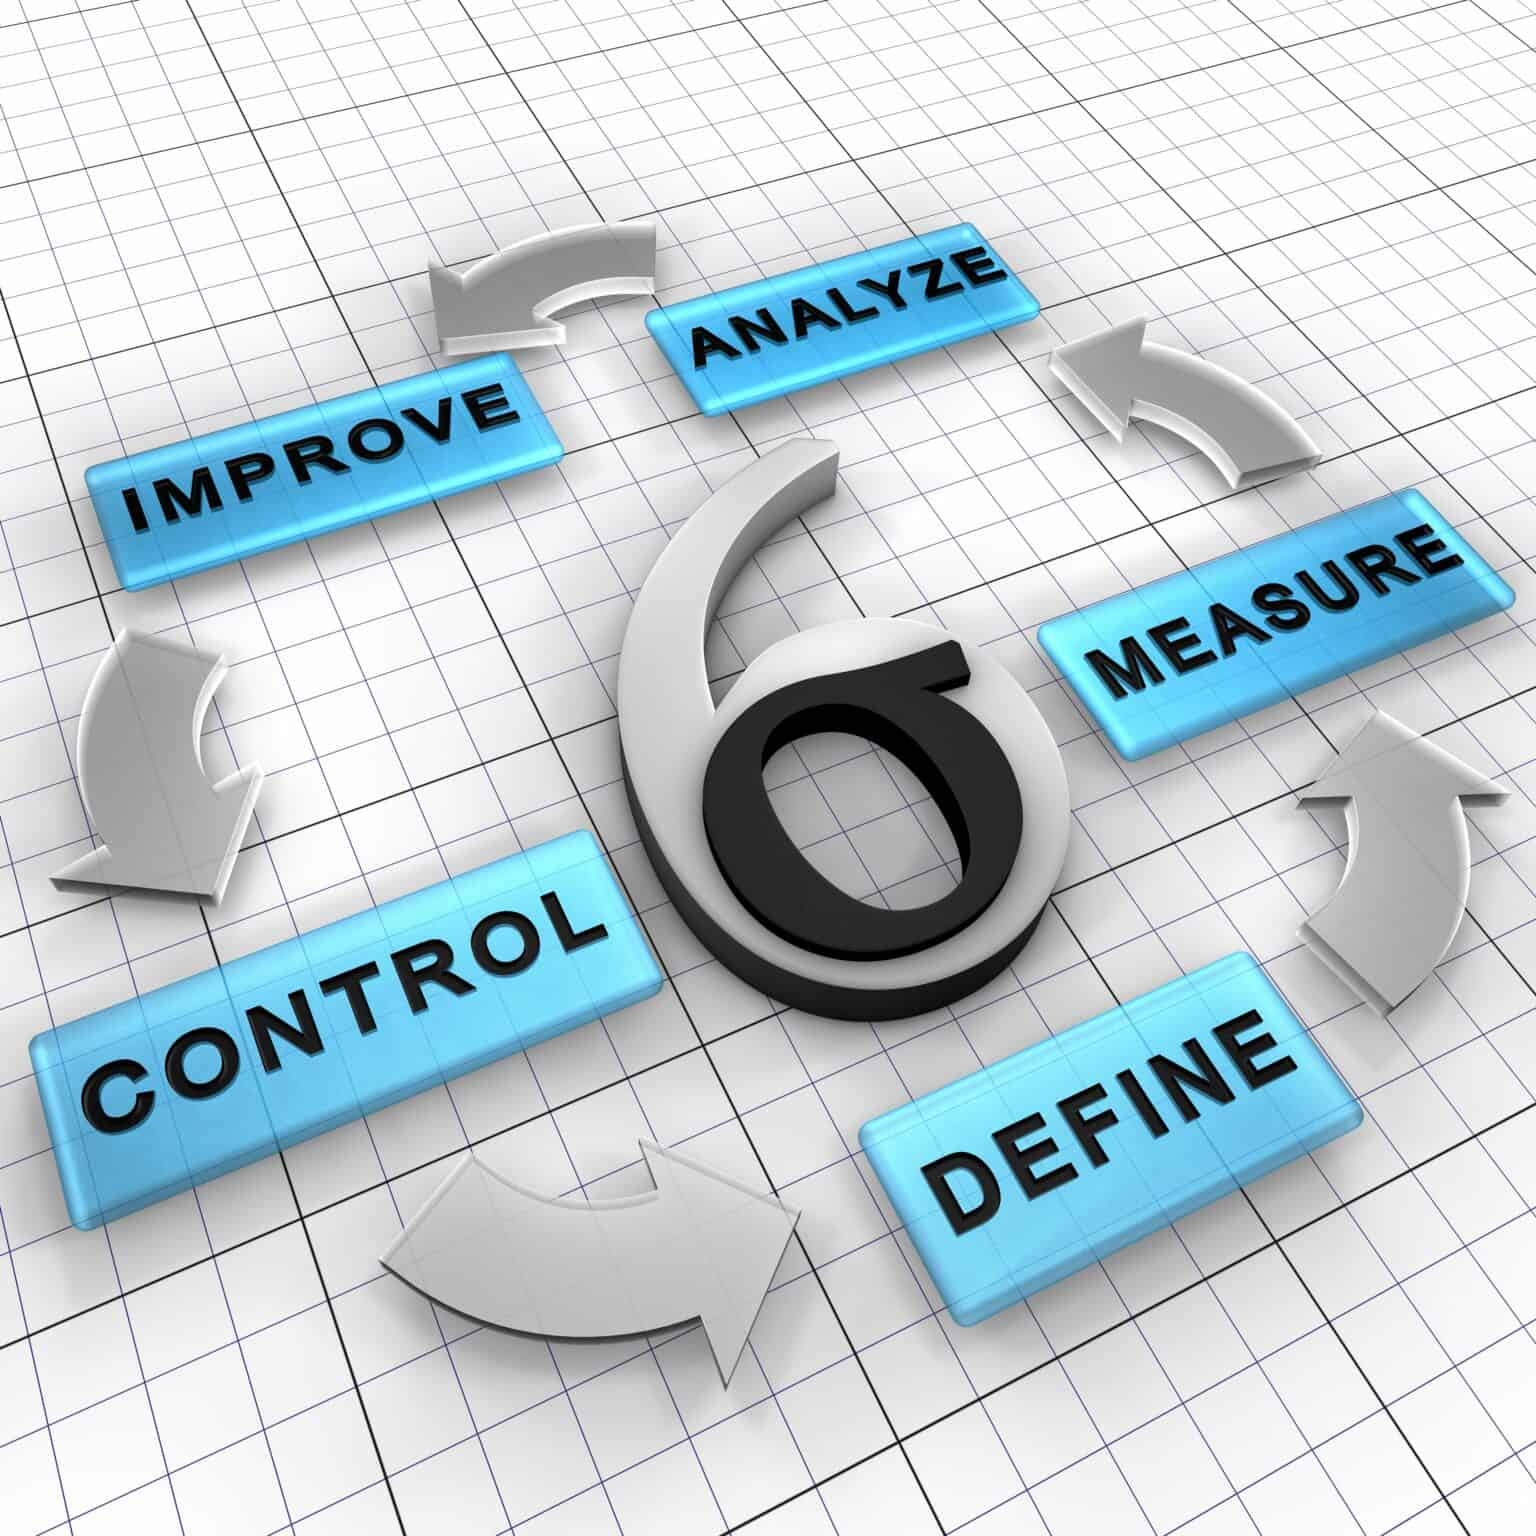 DMAIC is a business management strategy that improves existing project. It has five steps: Define, Measure, Analyze, Improve, Control